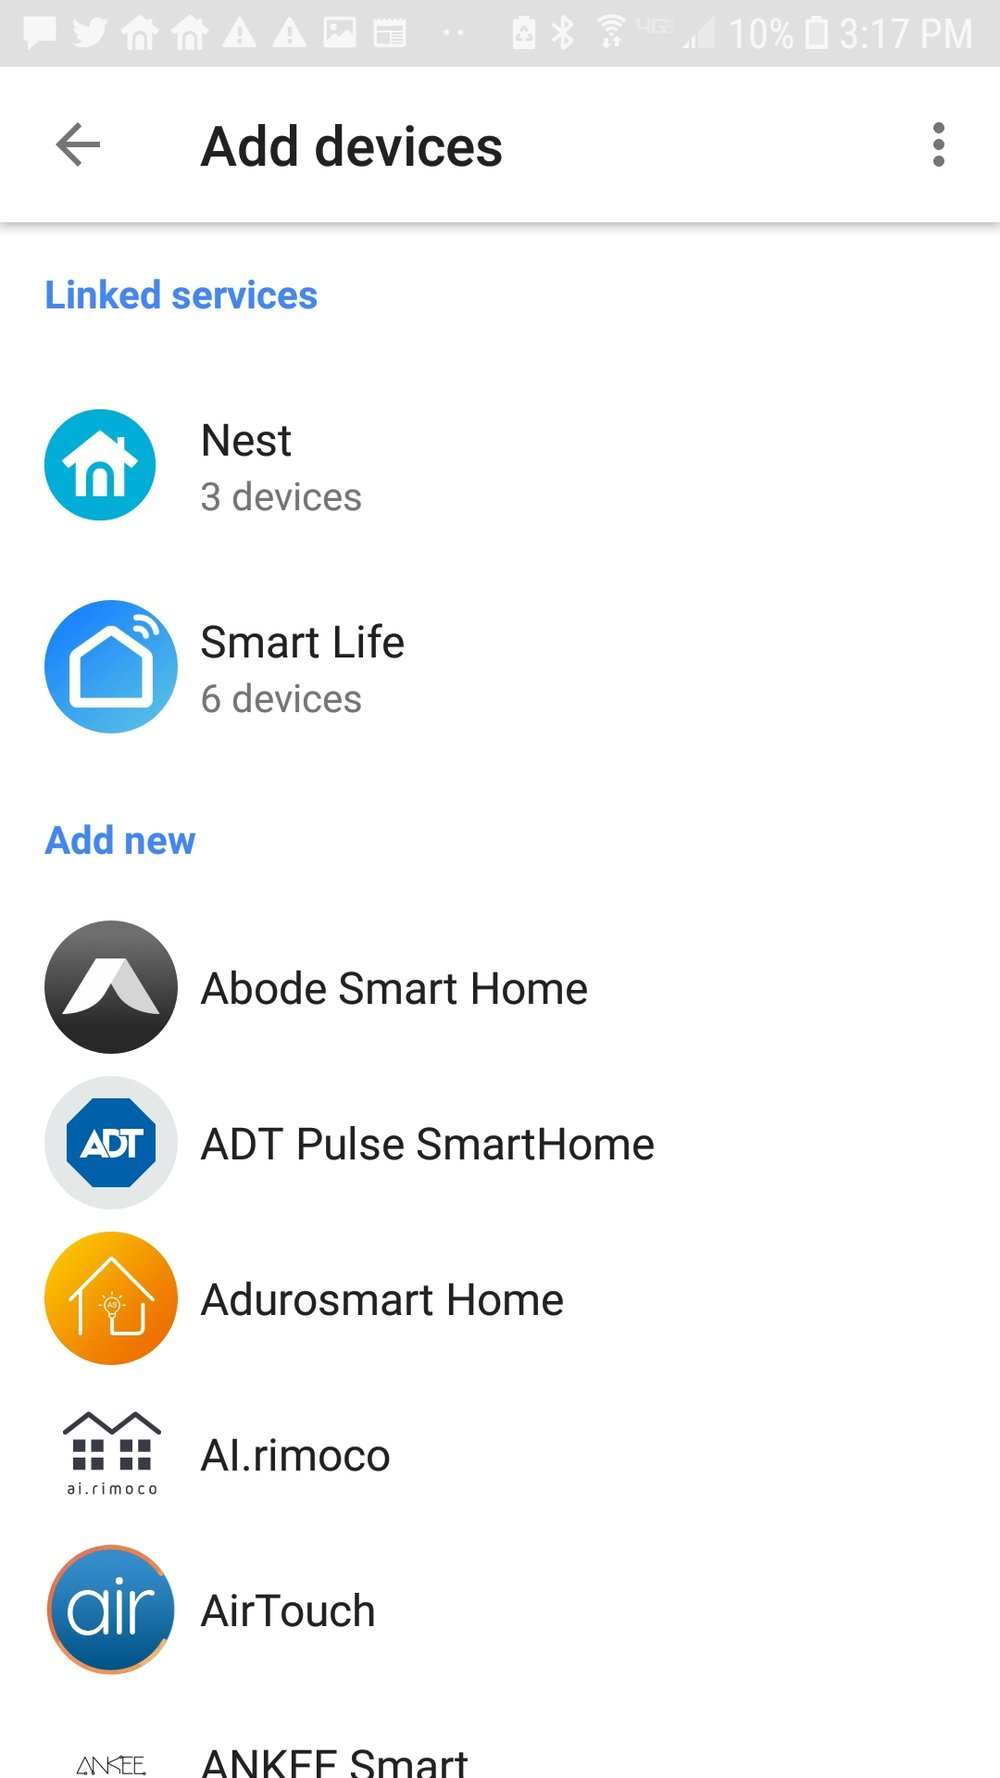 Click on the nest service to add the nest skill to the google home mini. You will then need to input your nest username and password.